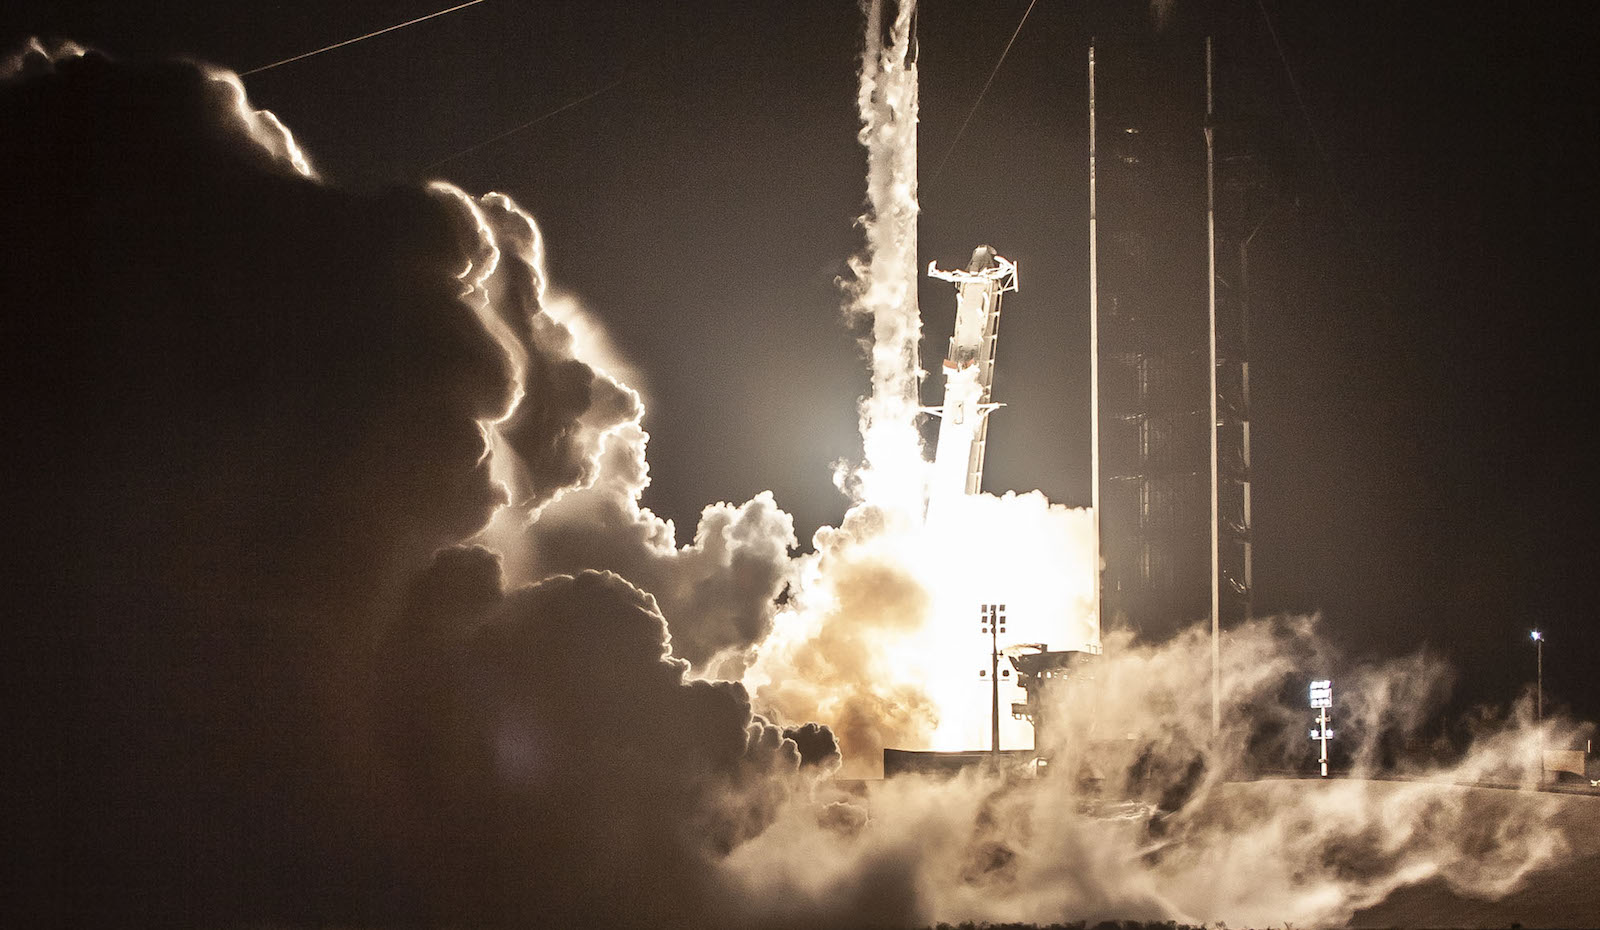 Launch of the crew-carrying orbital spacecraft (Photo: SpaceX)